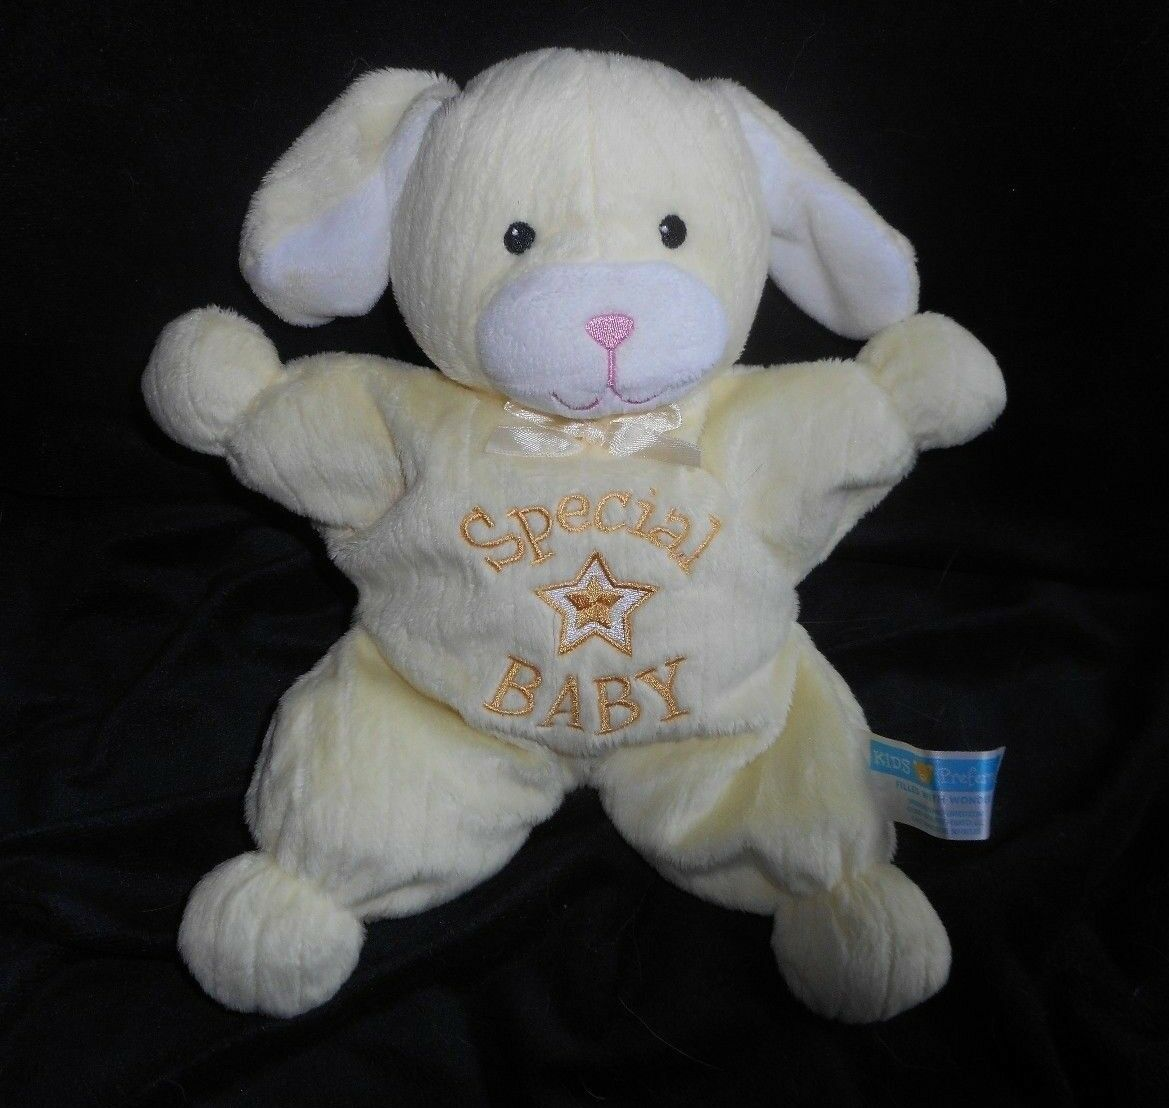 KIDS PREFERROT SWEET DREAMS SPECIAL BABY Gelb DOG STUFFED ANIMAL PLUSH TOY